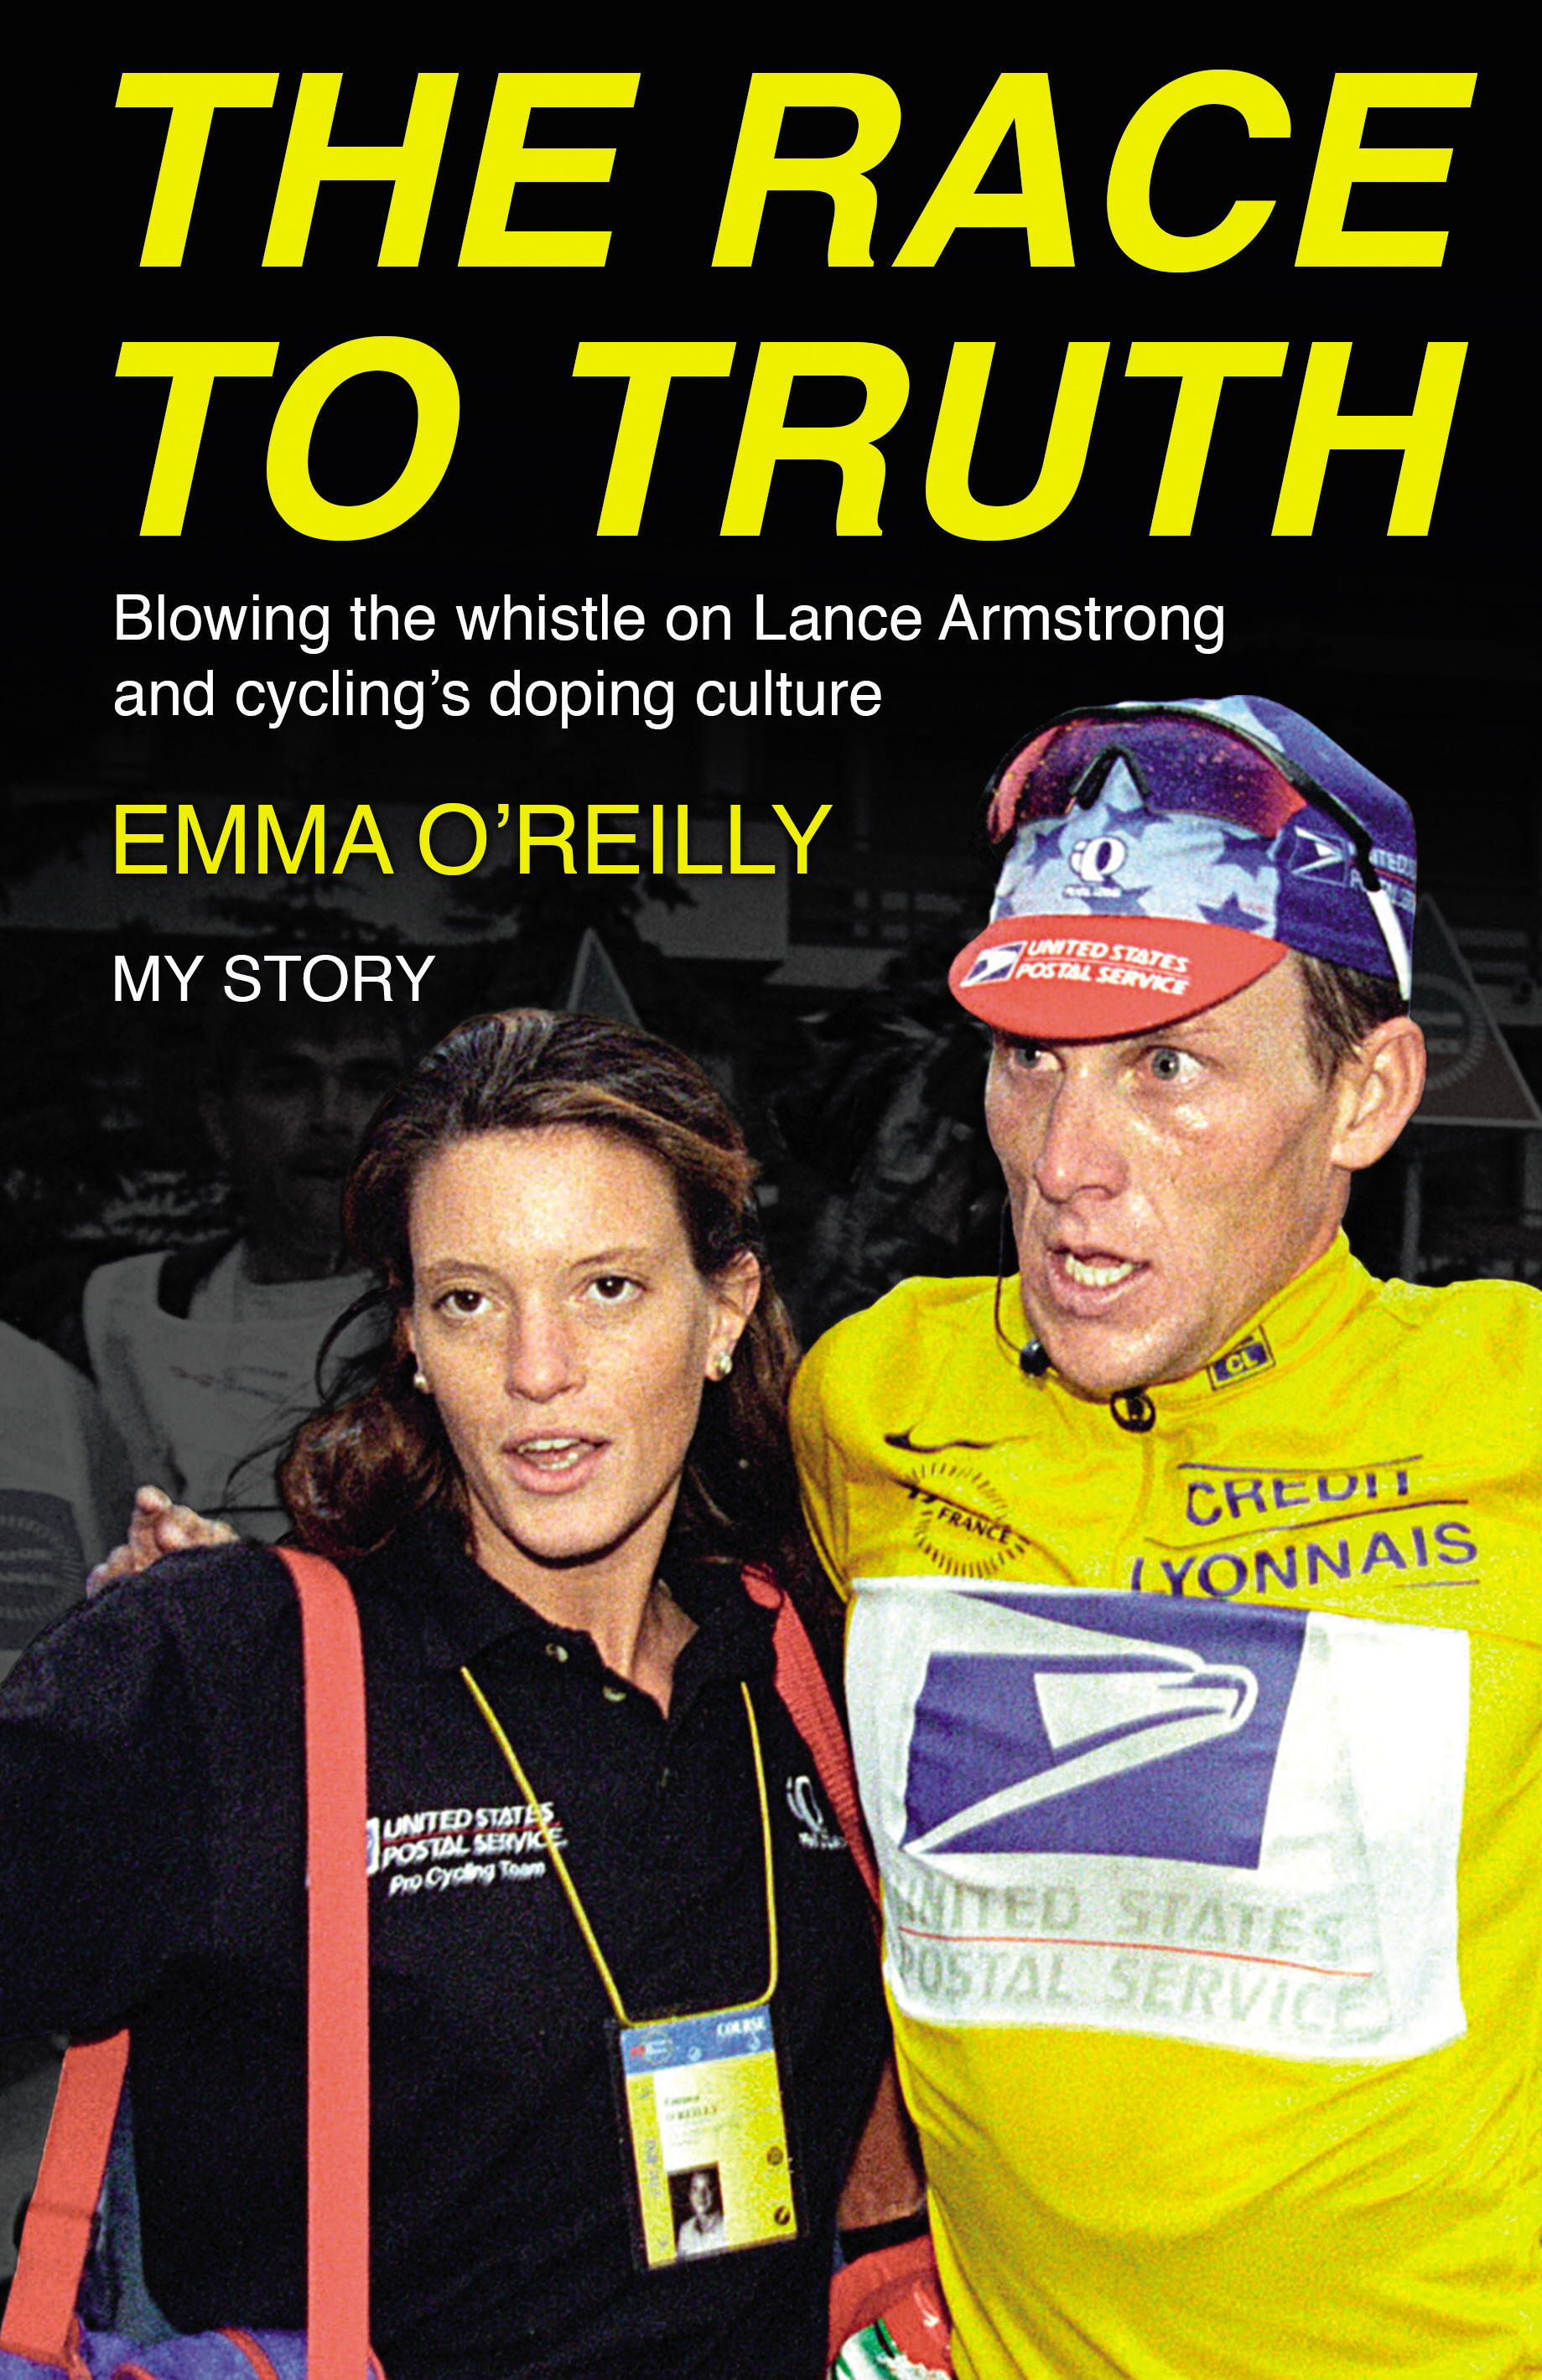 The Race to Truth Blowing the whistle on Lance Armstrong and cycling's doping culture